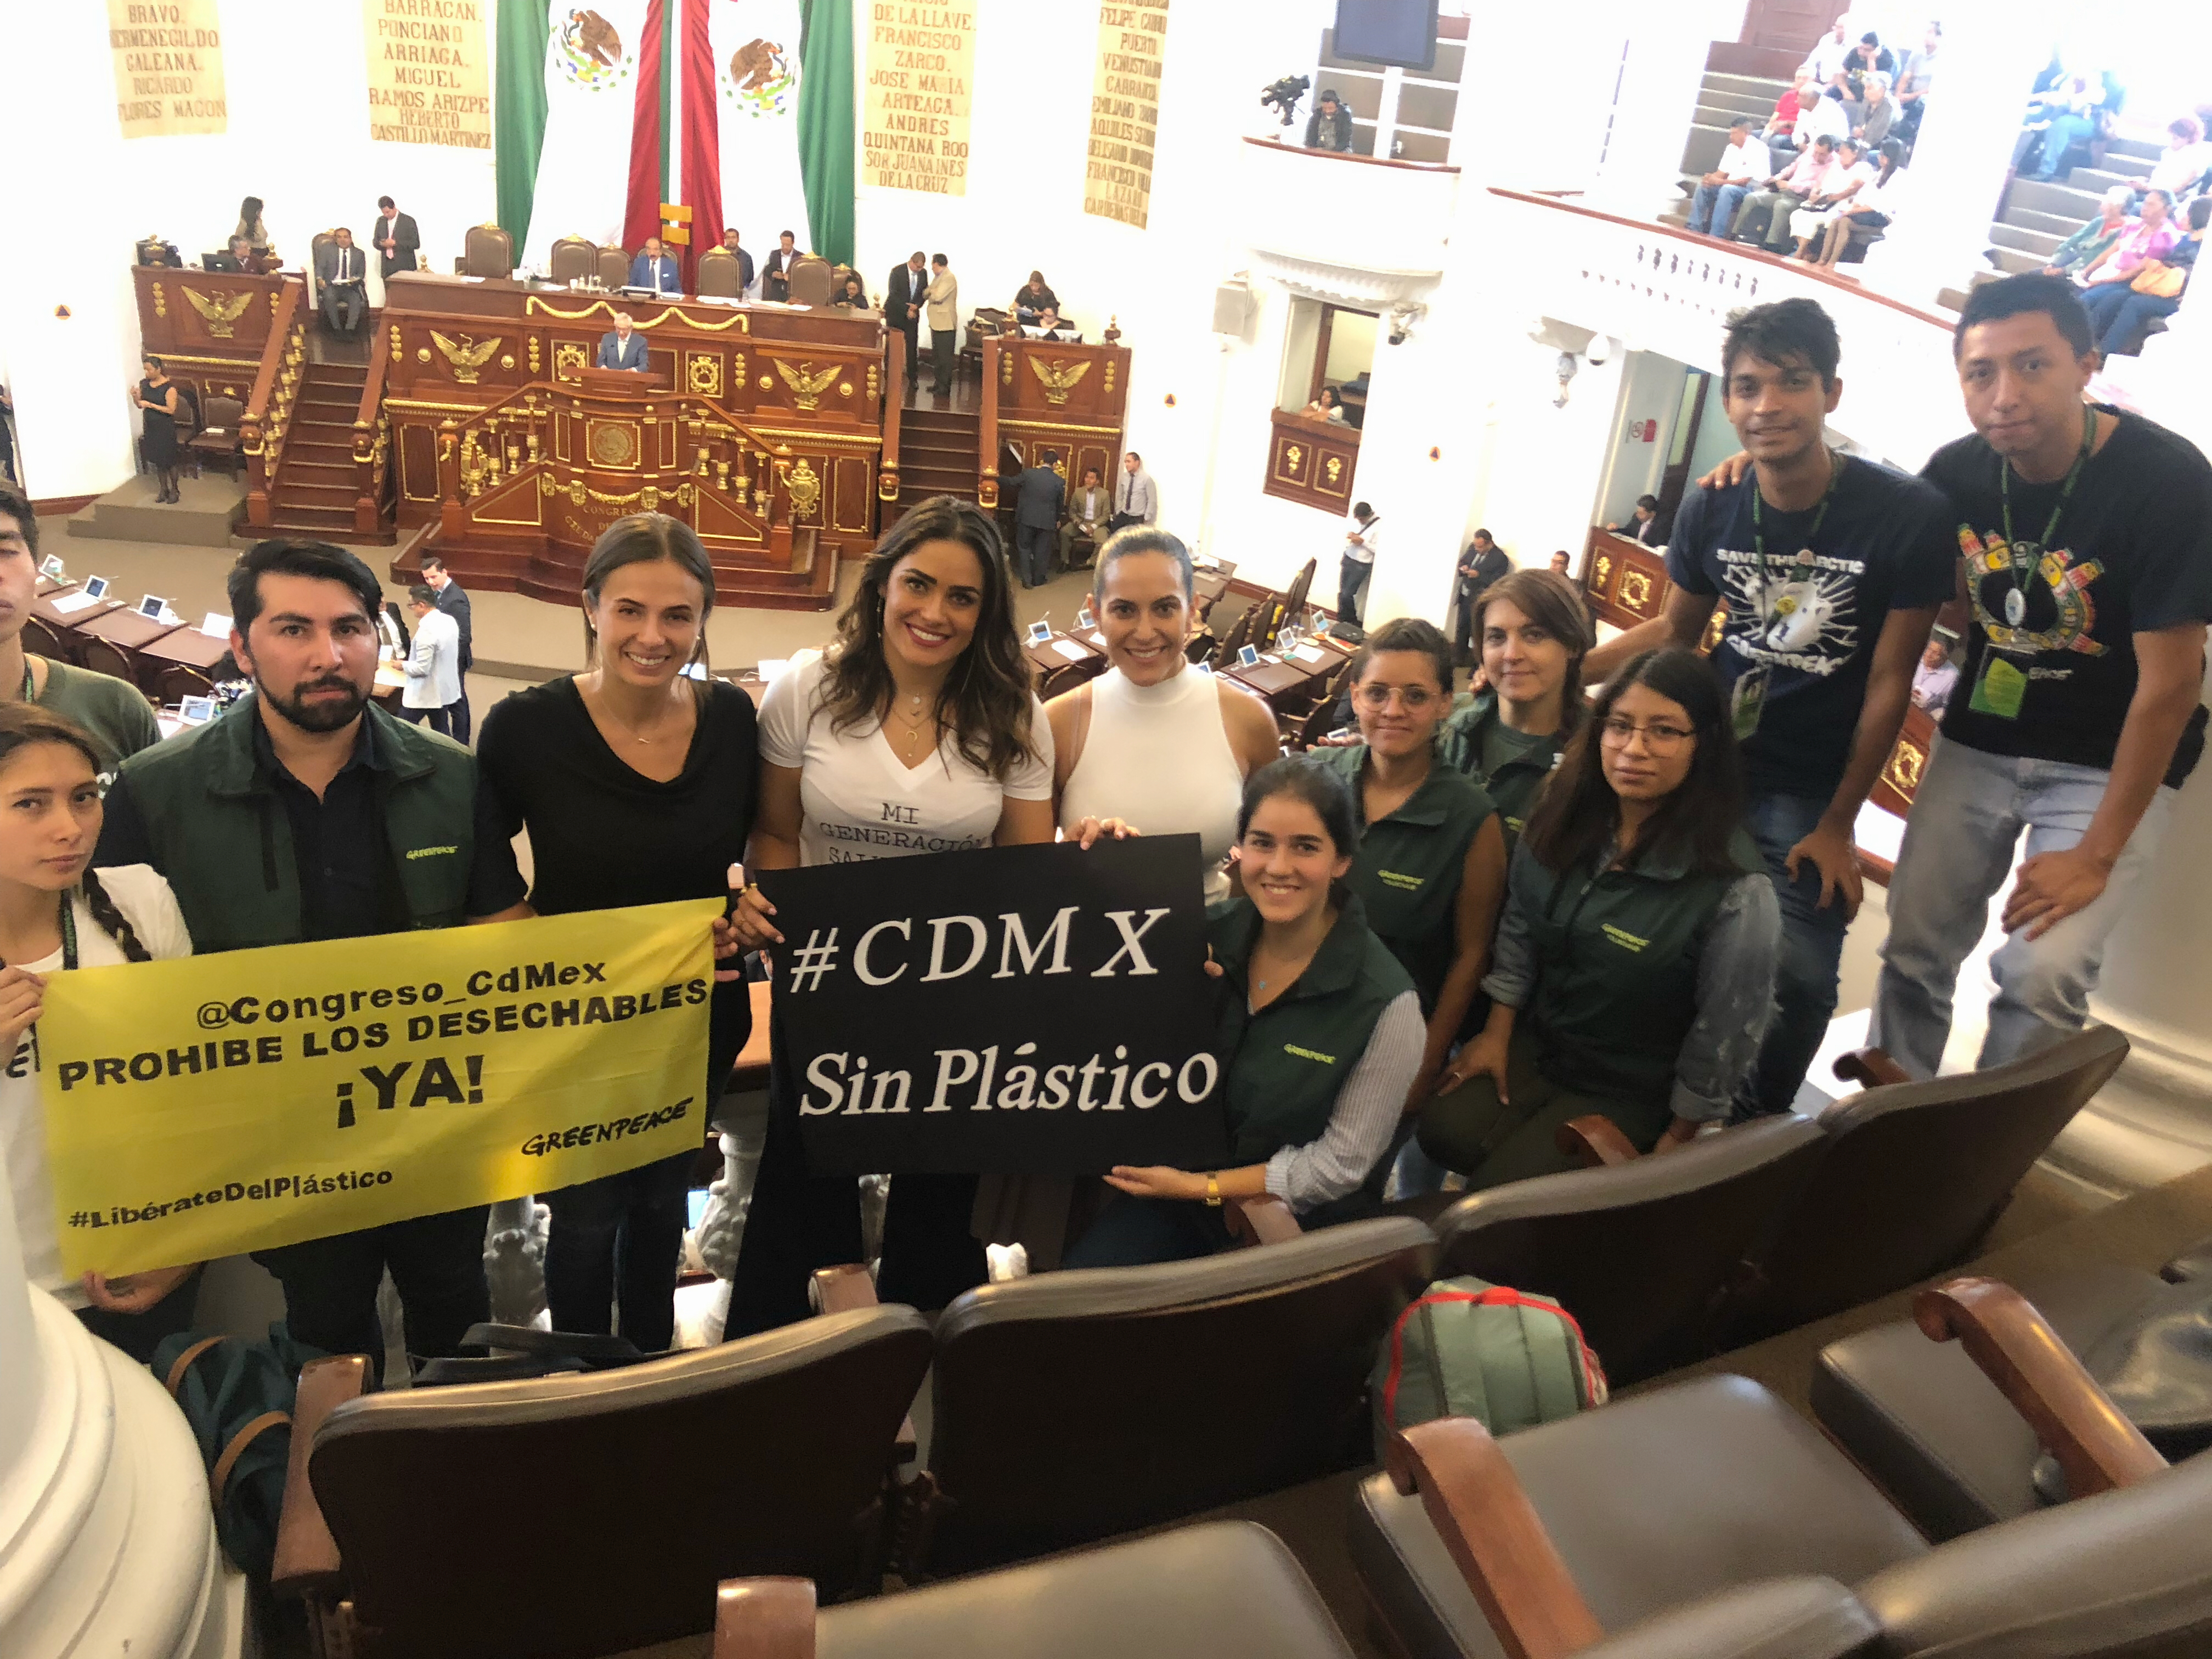 Prohibiting Single Use Plastics in 2021 at CDMX